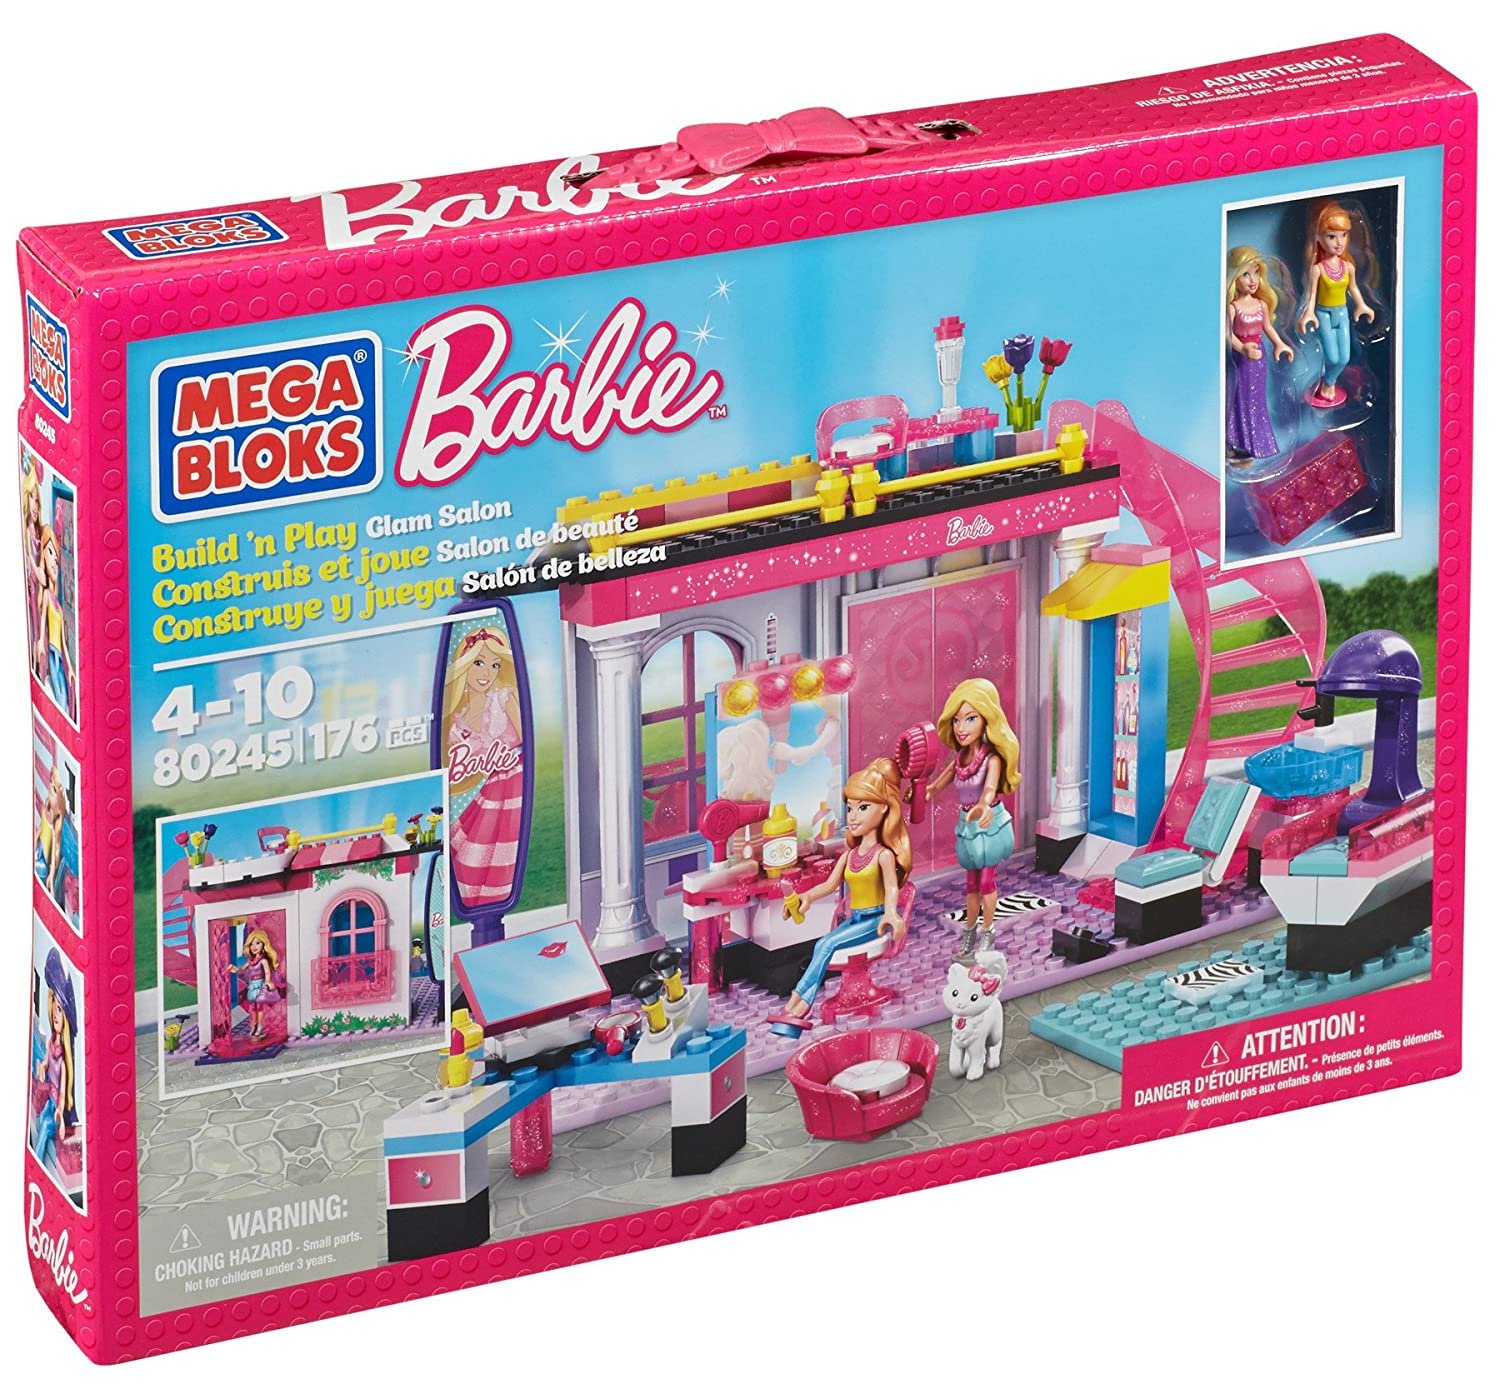 Mega Bloks Barbie Fashion Boutique Barbie Doll House Like Lego Mega Bloks Barbie Glam Salon